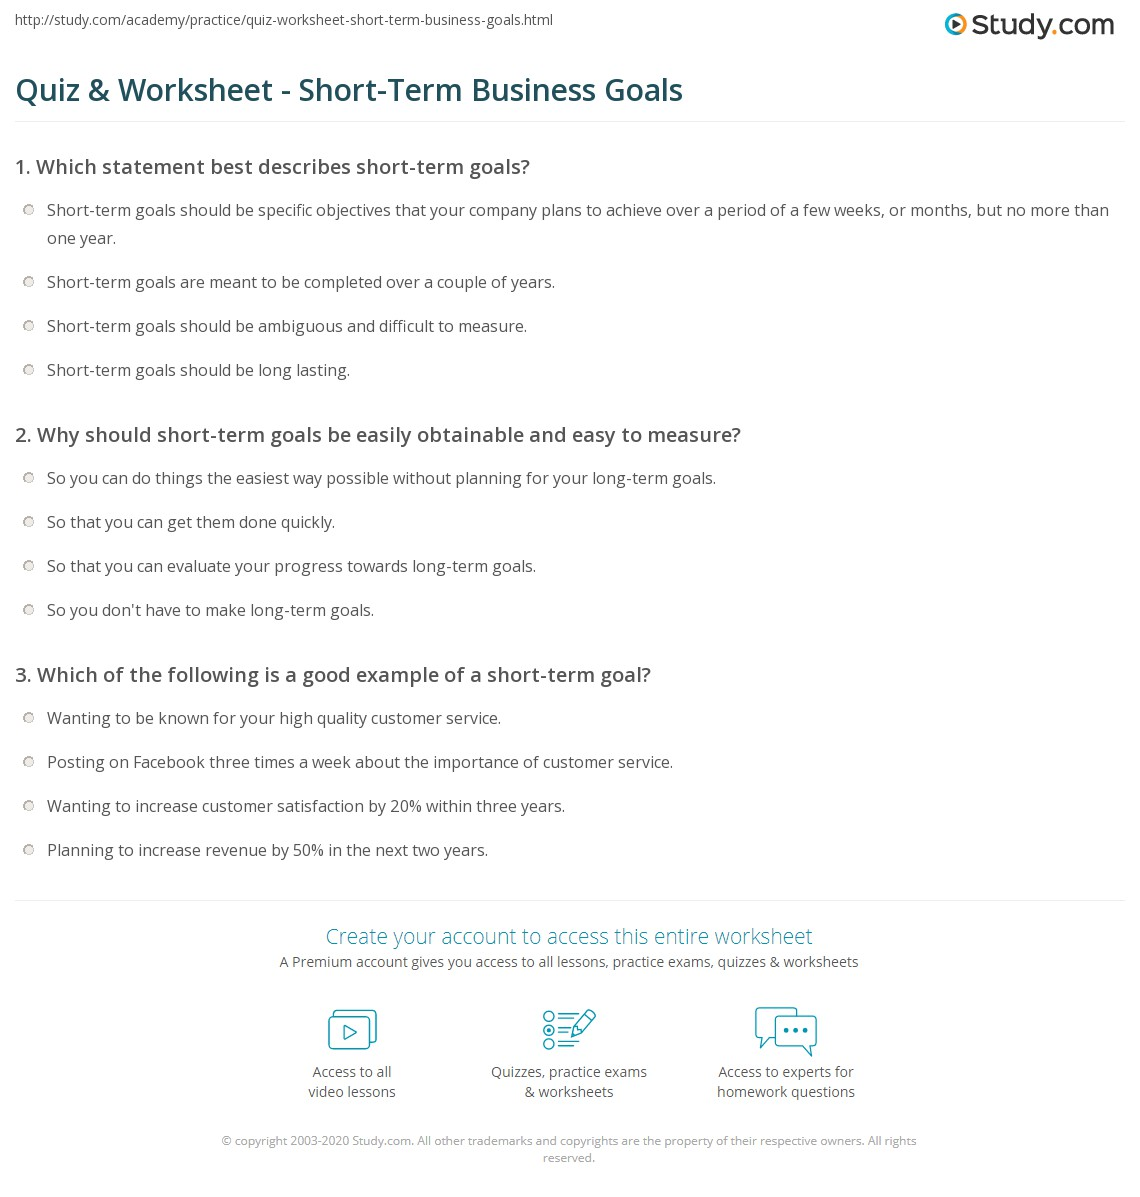 quiz & worksheet - short-term business goals | study